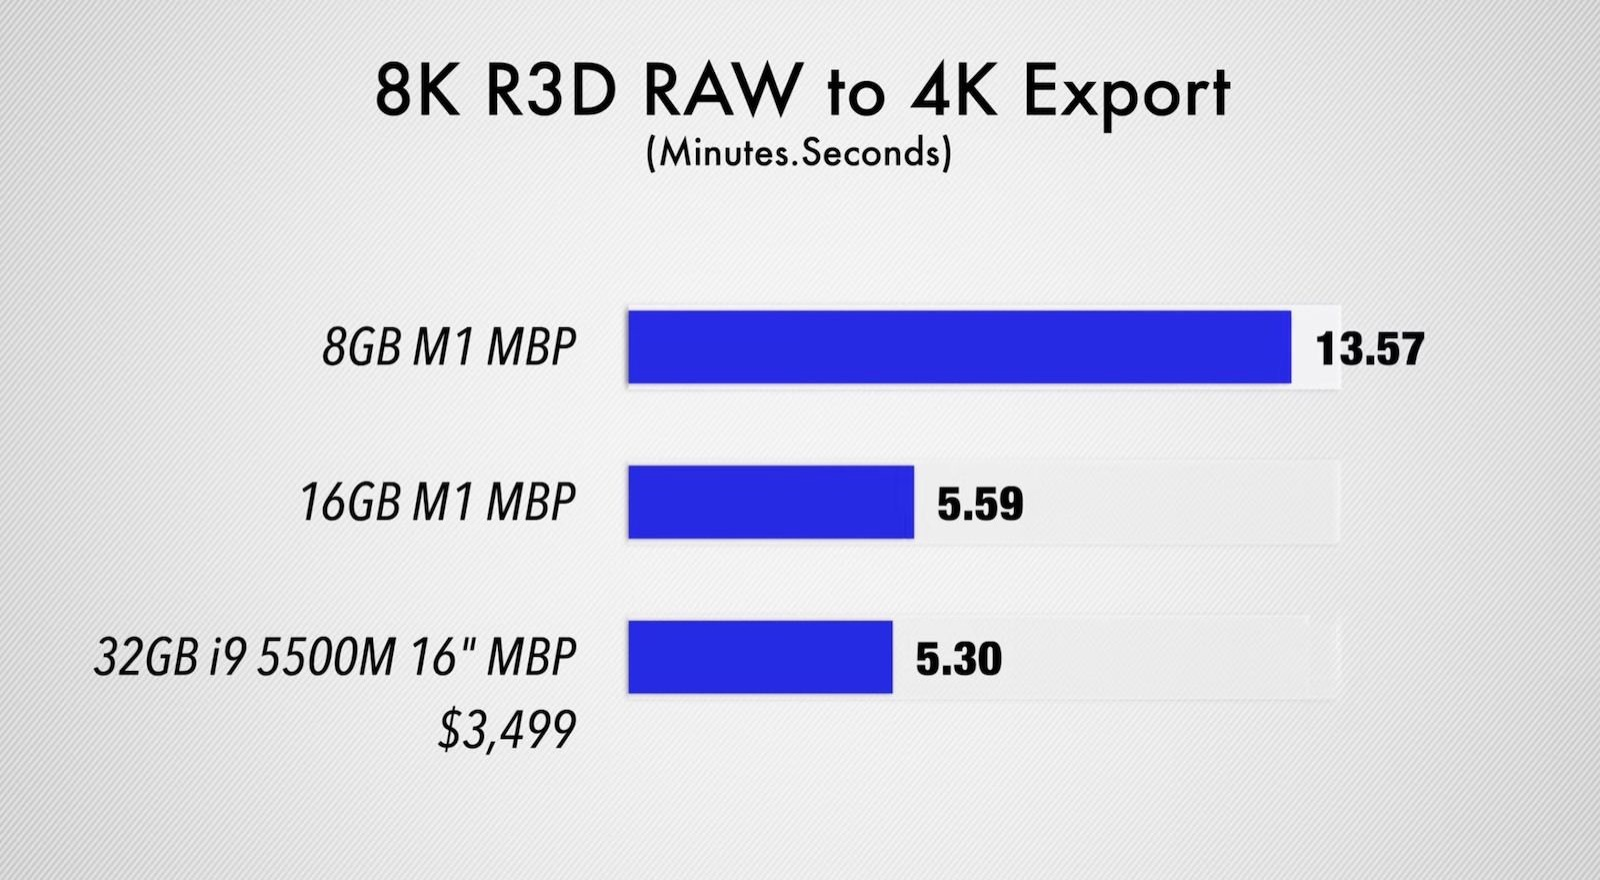 Comparison 8k 43d raw to 4k export